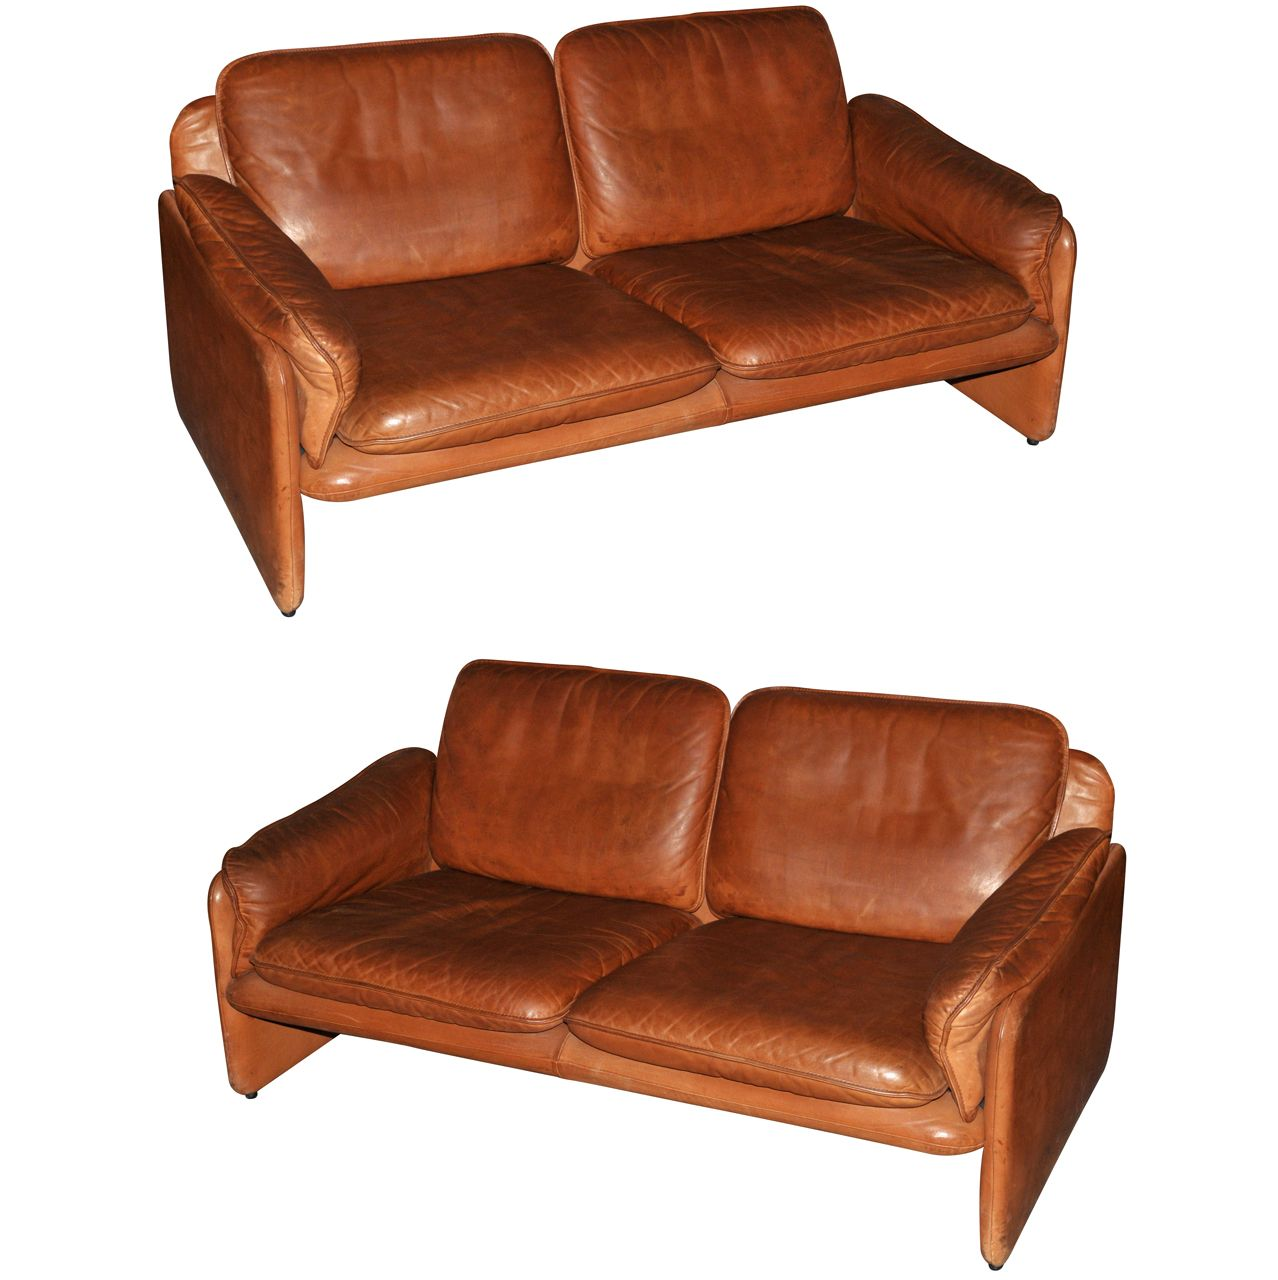 Two 1970s Sofas by De Sede